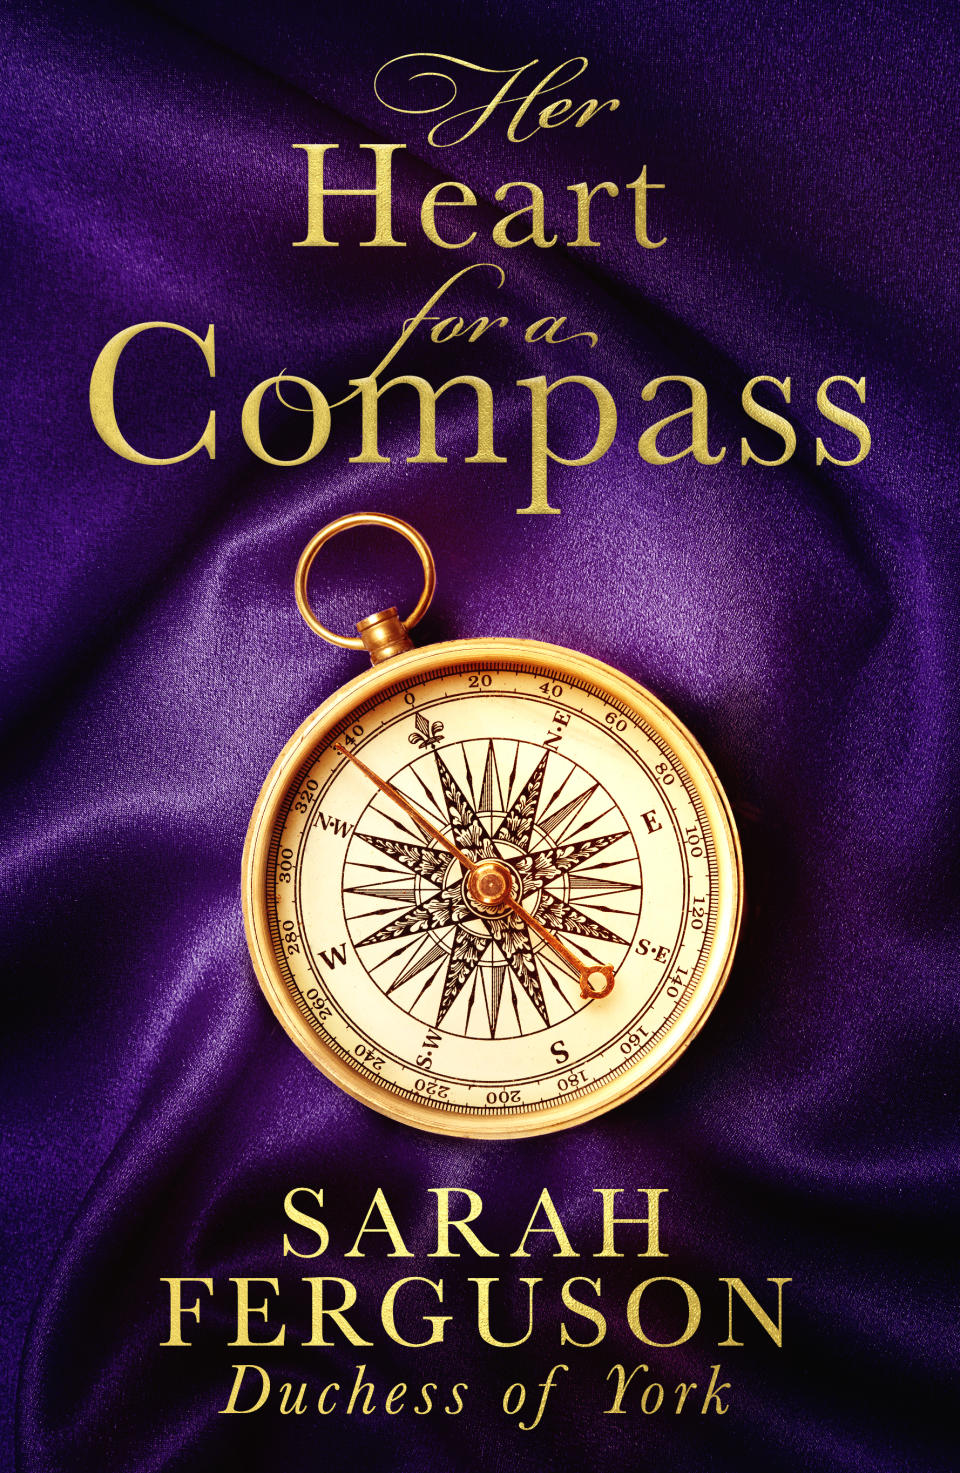 The novel will be called 'Her Heart for a Compass'